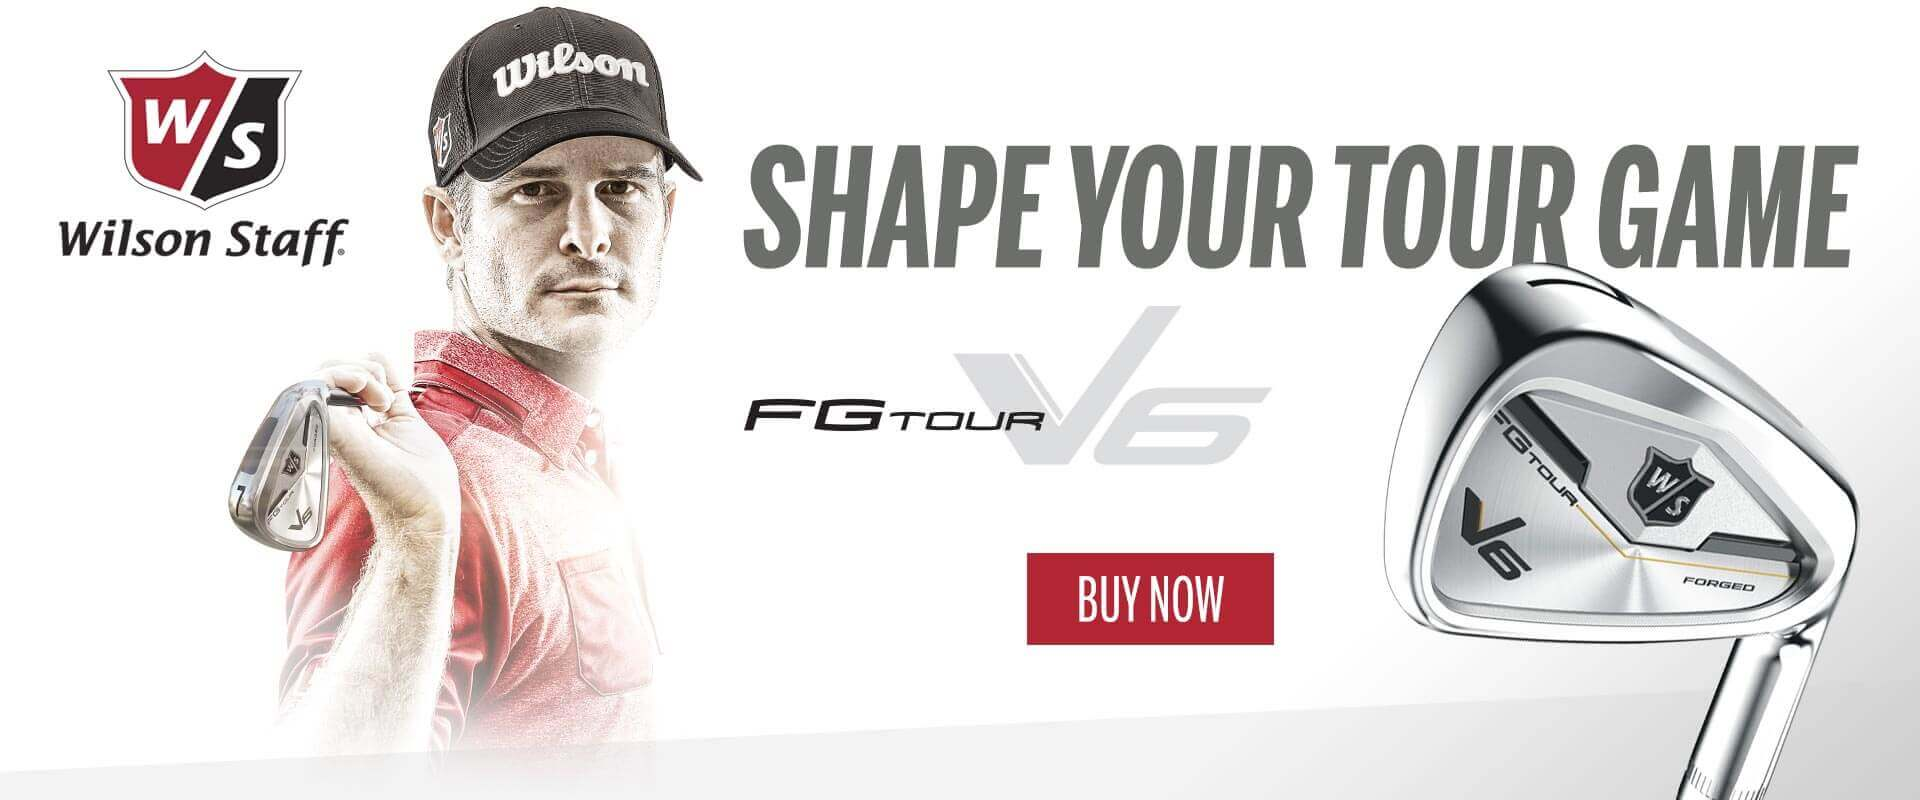 Shape Your Tour Game - FG Tour V6